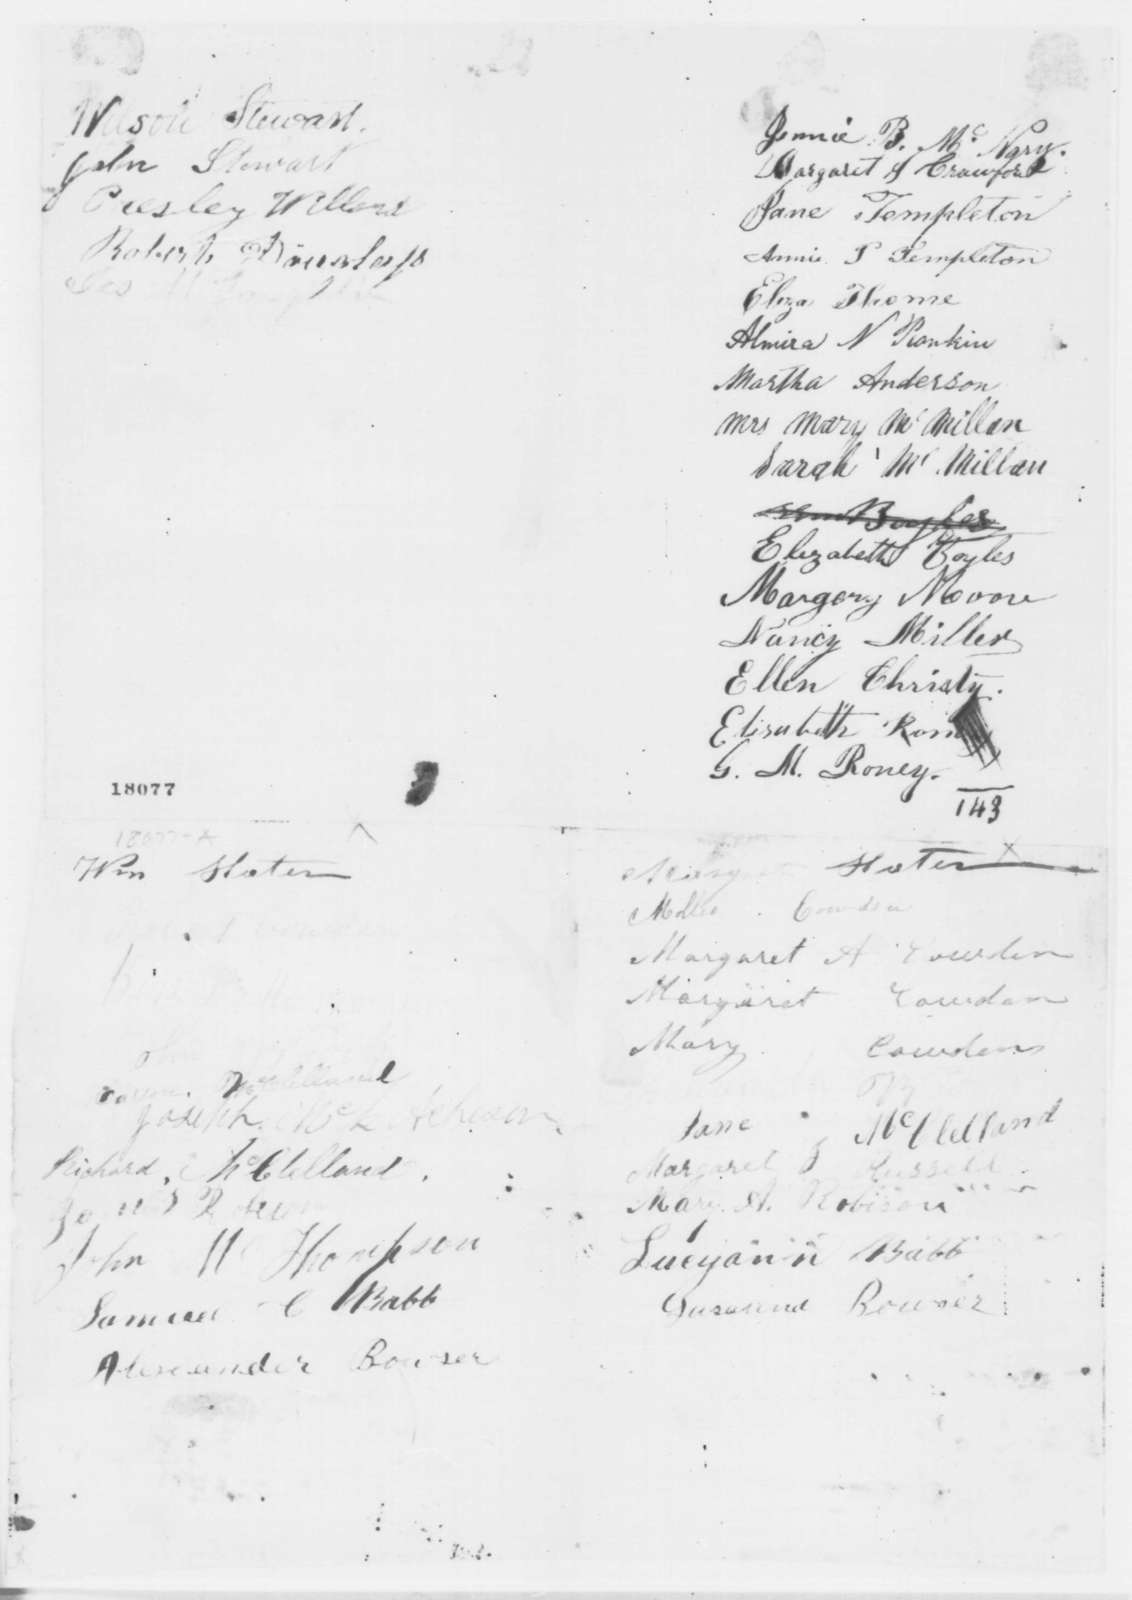 Washington County Pennsylvania Citizens to Abraham Lincoln, Thursday, August 28, 1862  (Petition recommending emancipation)